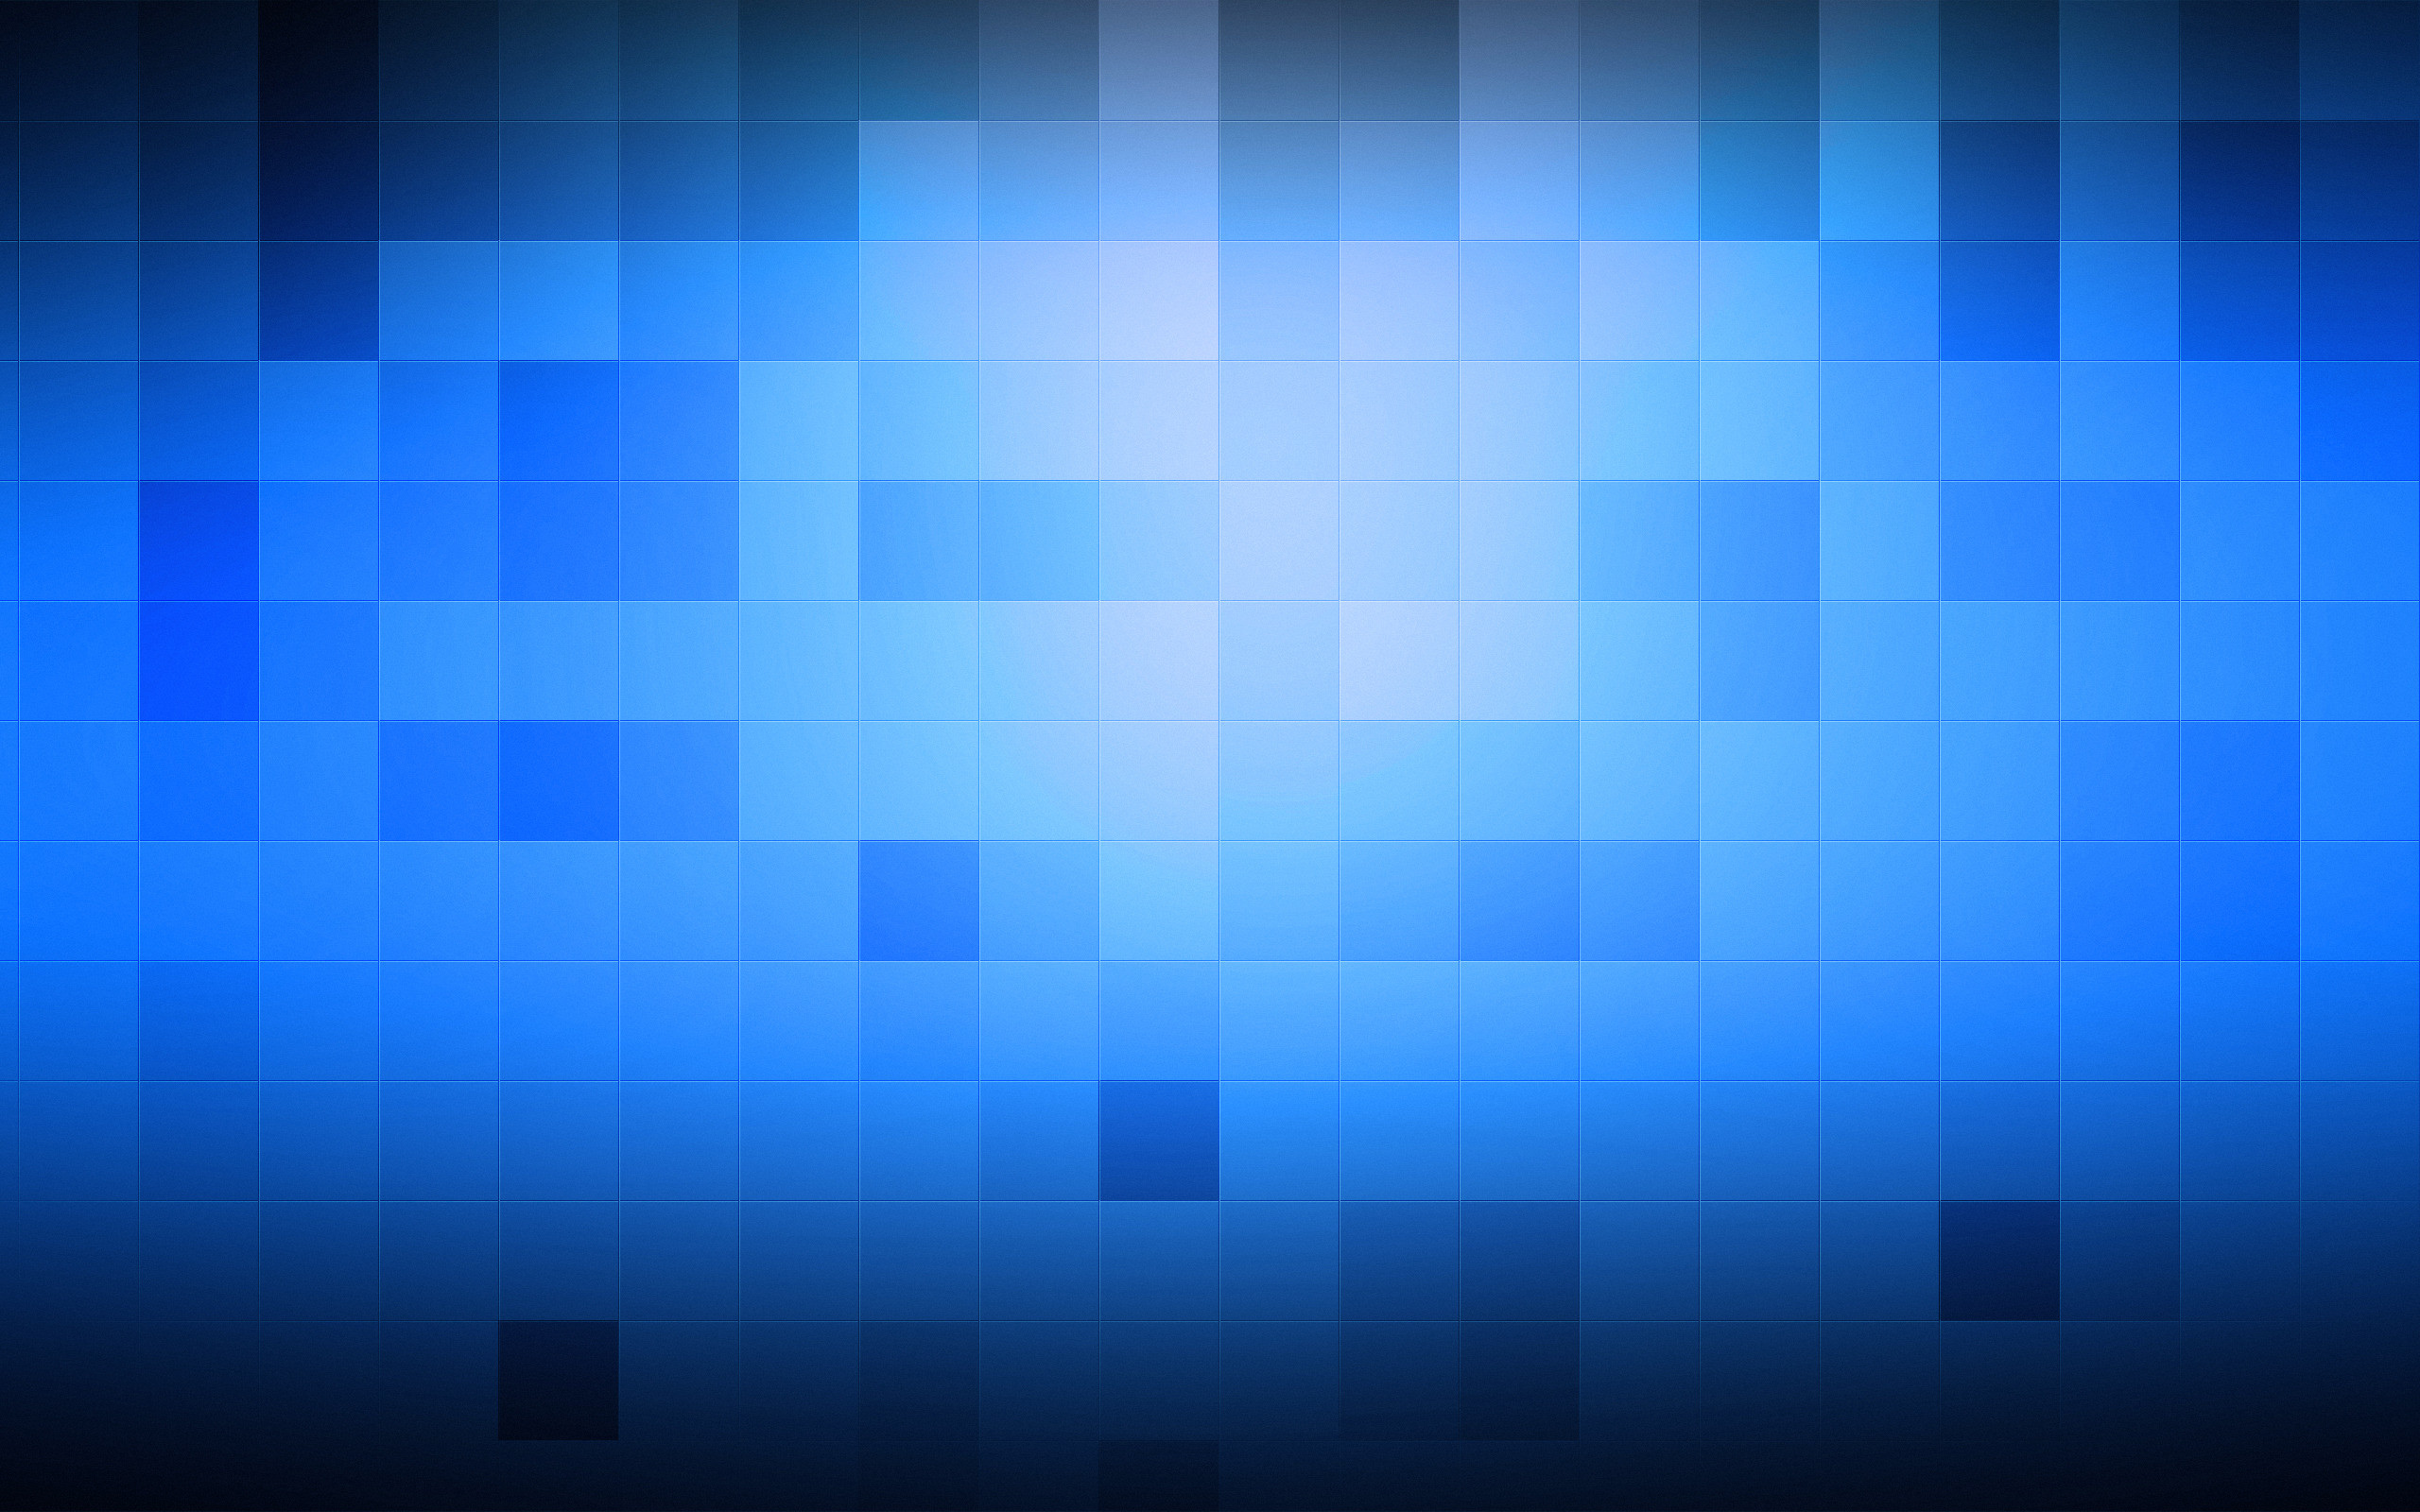 2560x1600 Blue Abstract Background Hd Wallpapers in Abstract Imagesci